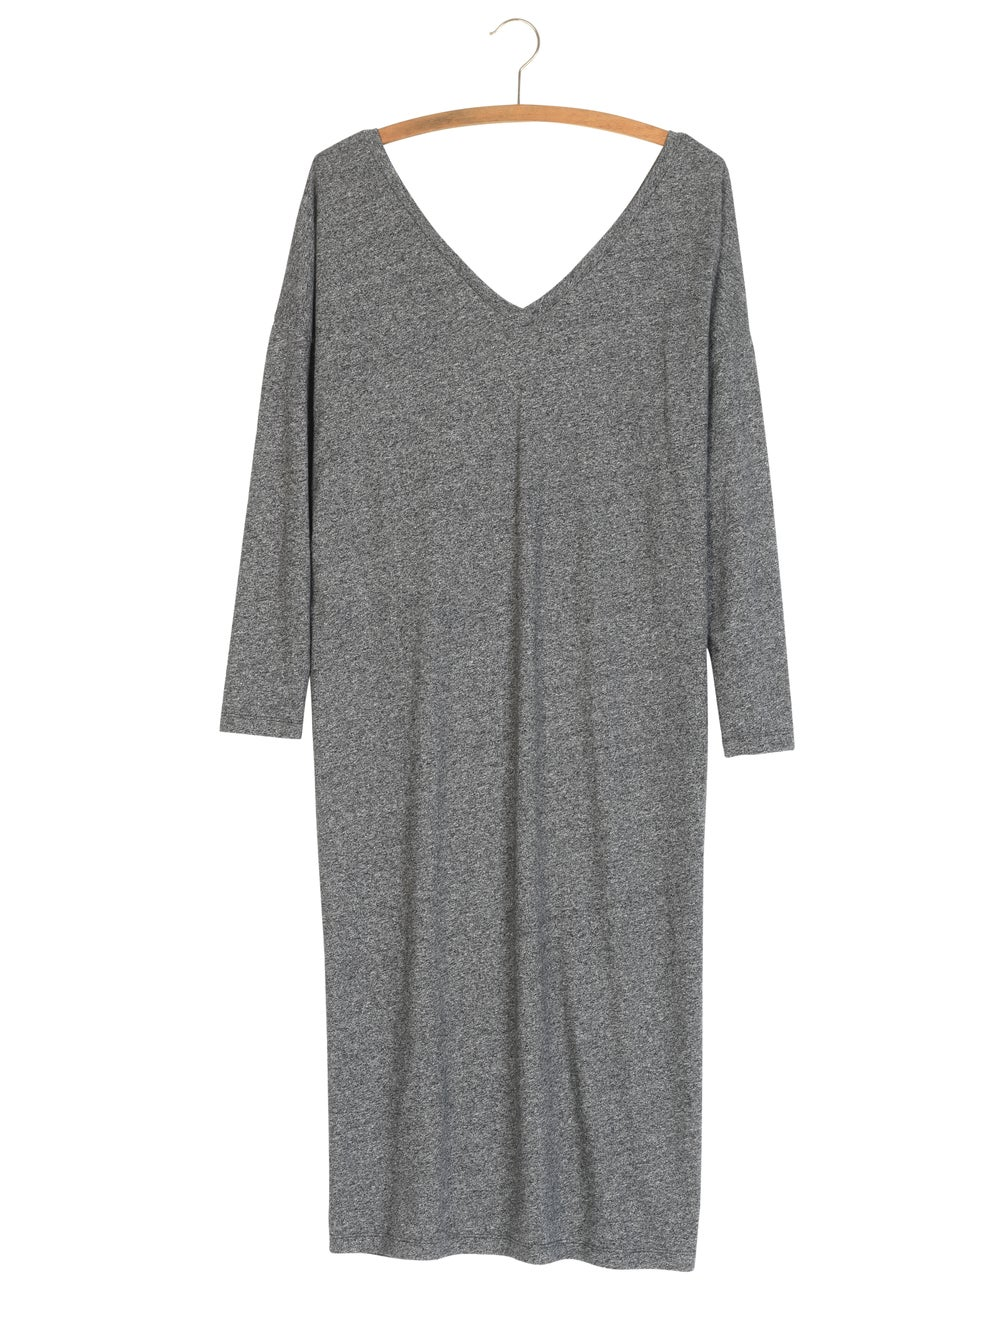 Image of Robe mi-longue jersey chiné EMELINE 90€ -60%